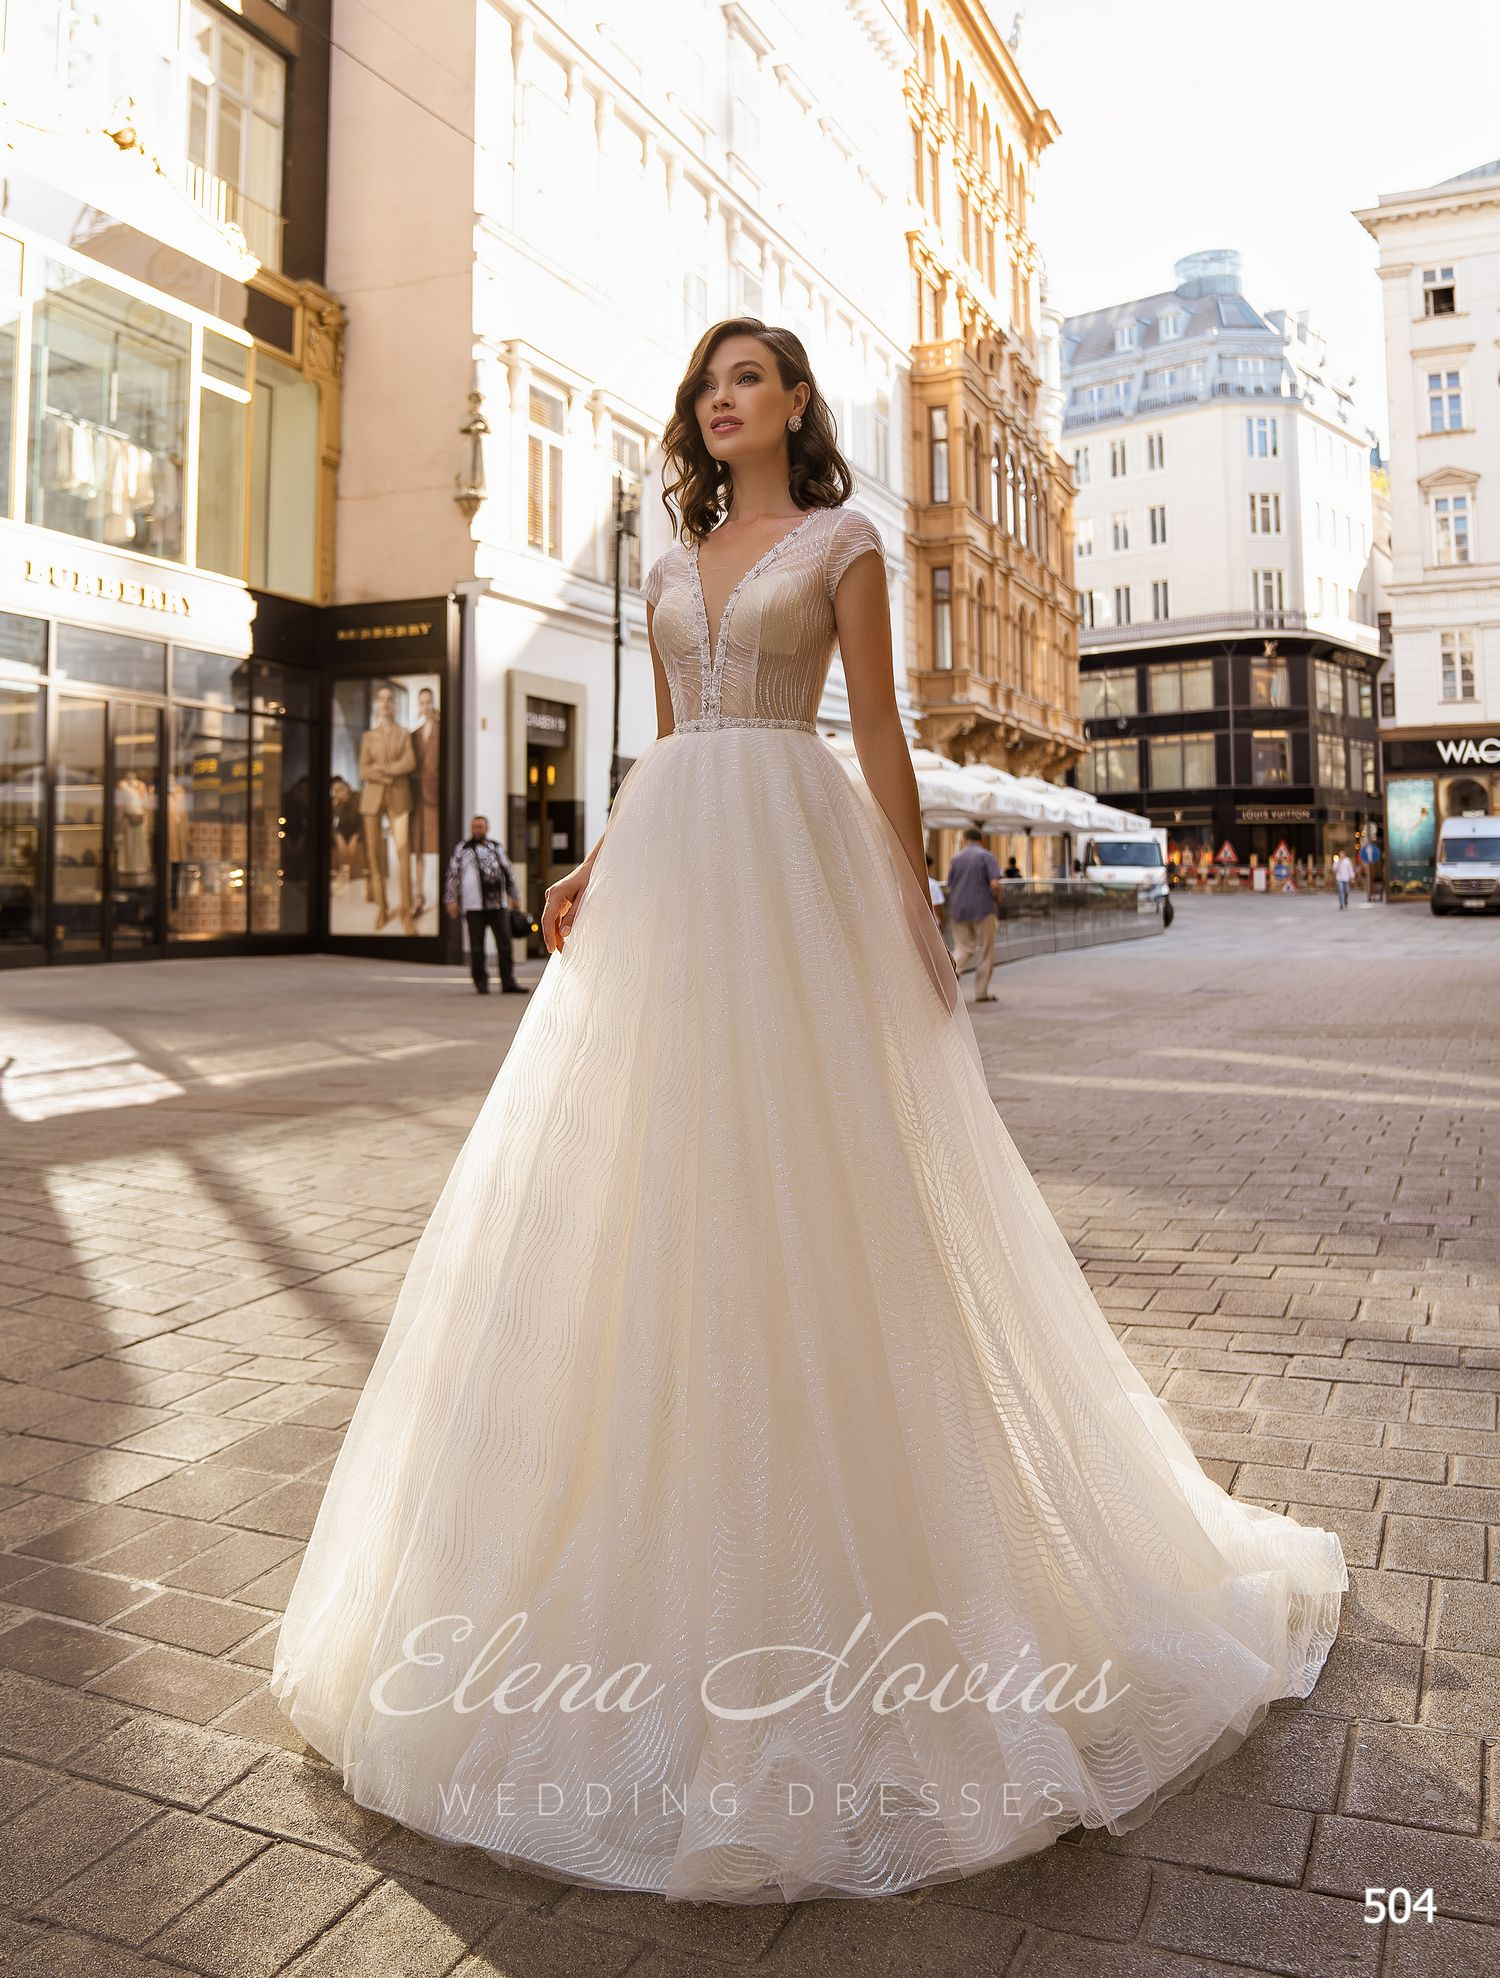 Wedding dresses 504